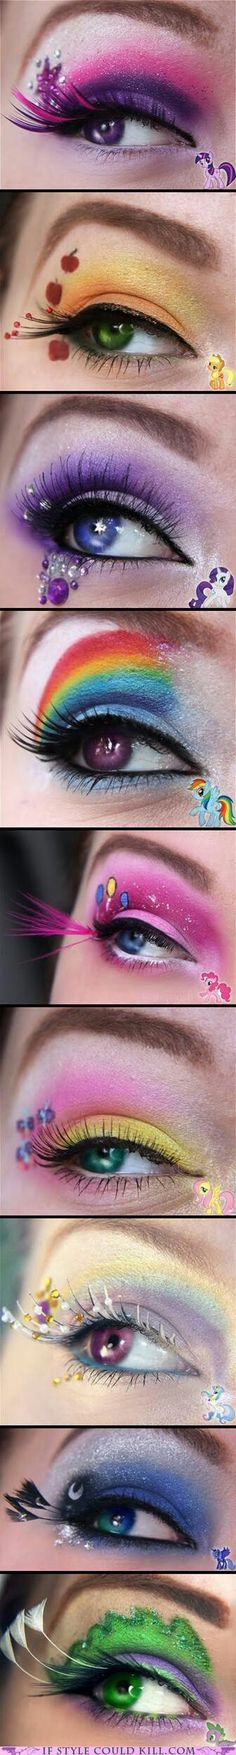 My little pony eye make up